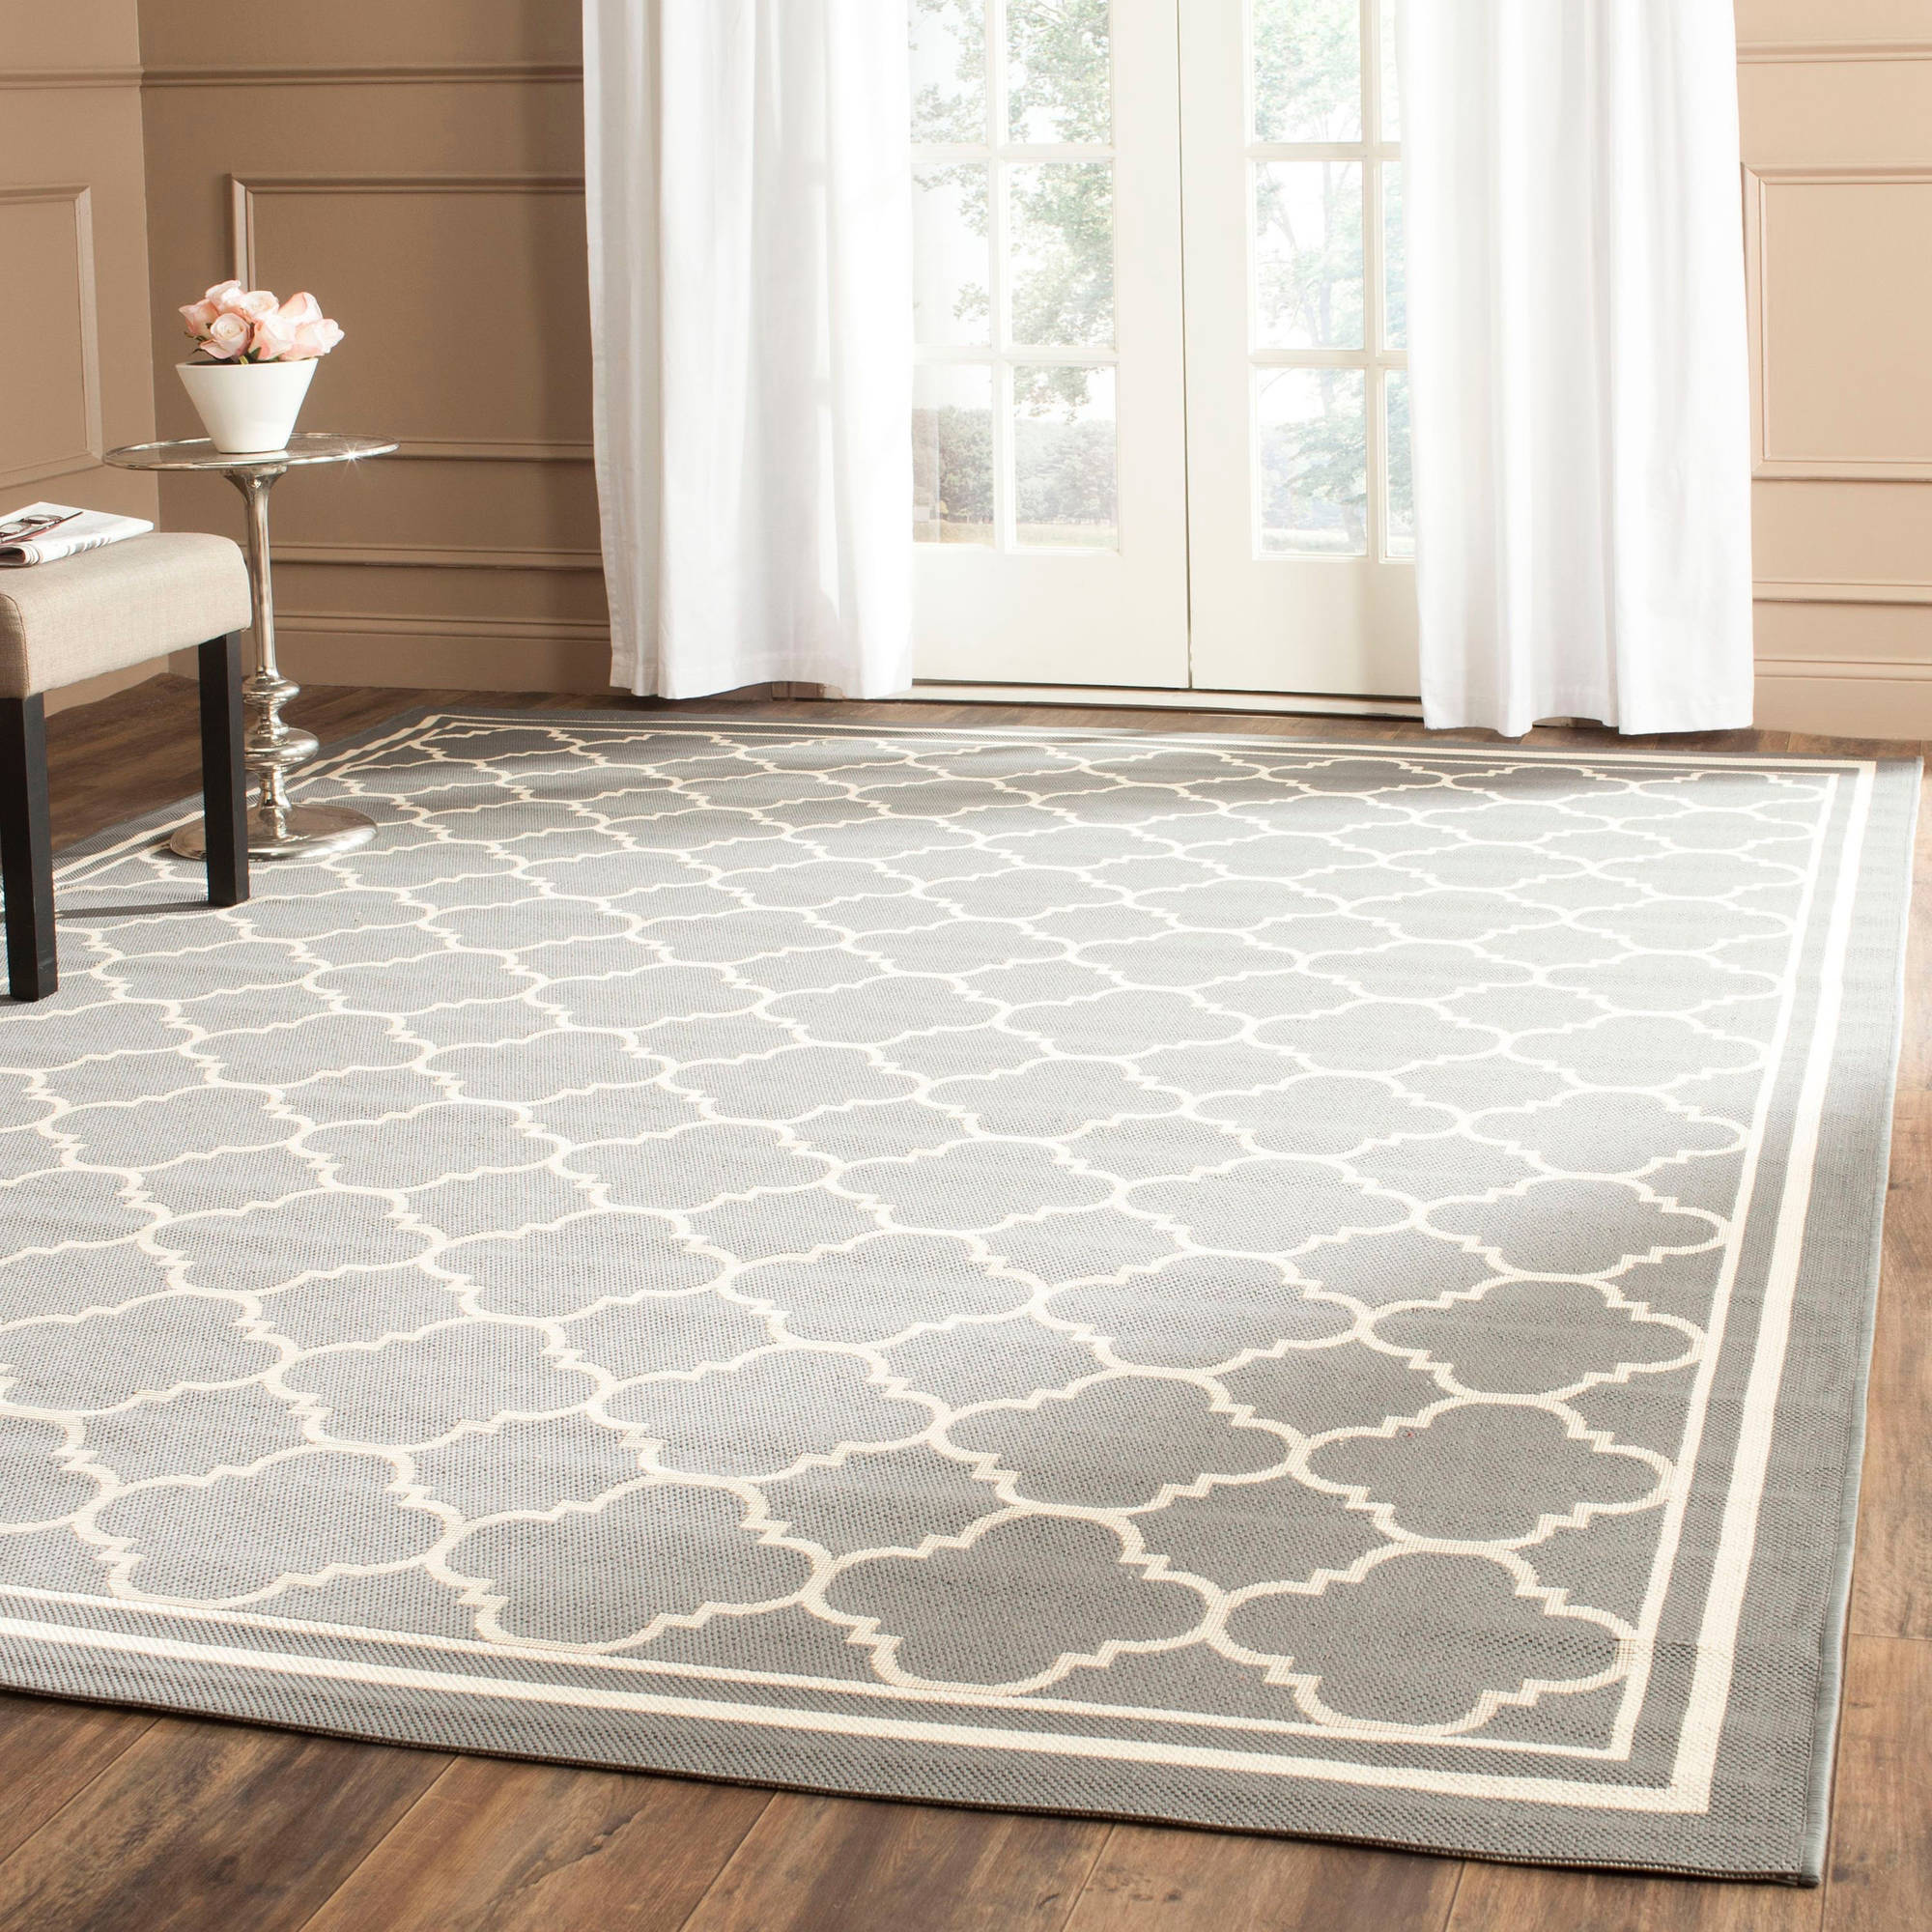 Amazing Safavieh Courtyard Alina Indoor/Outdoor Area Rug Or Runner